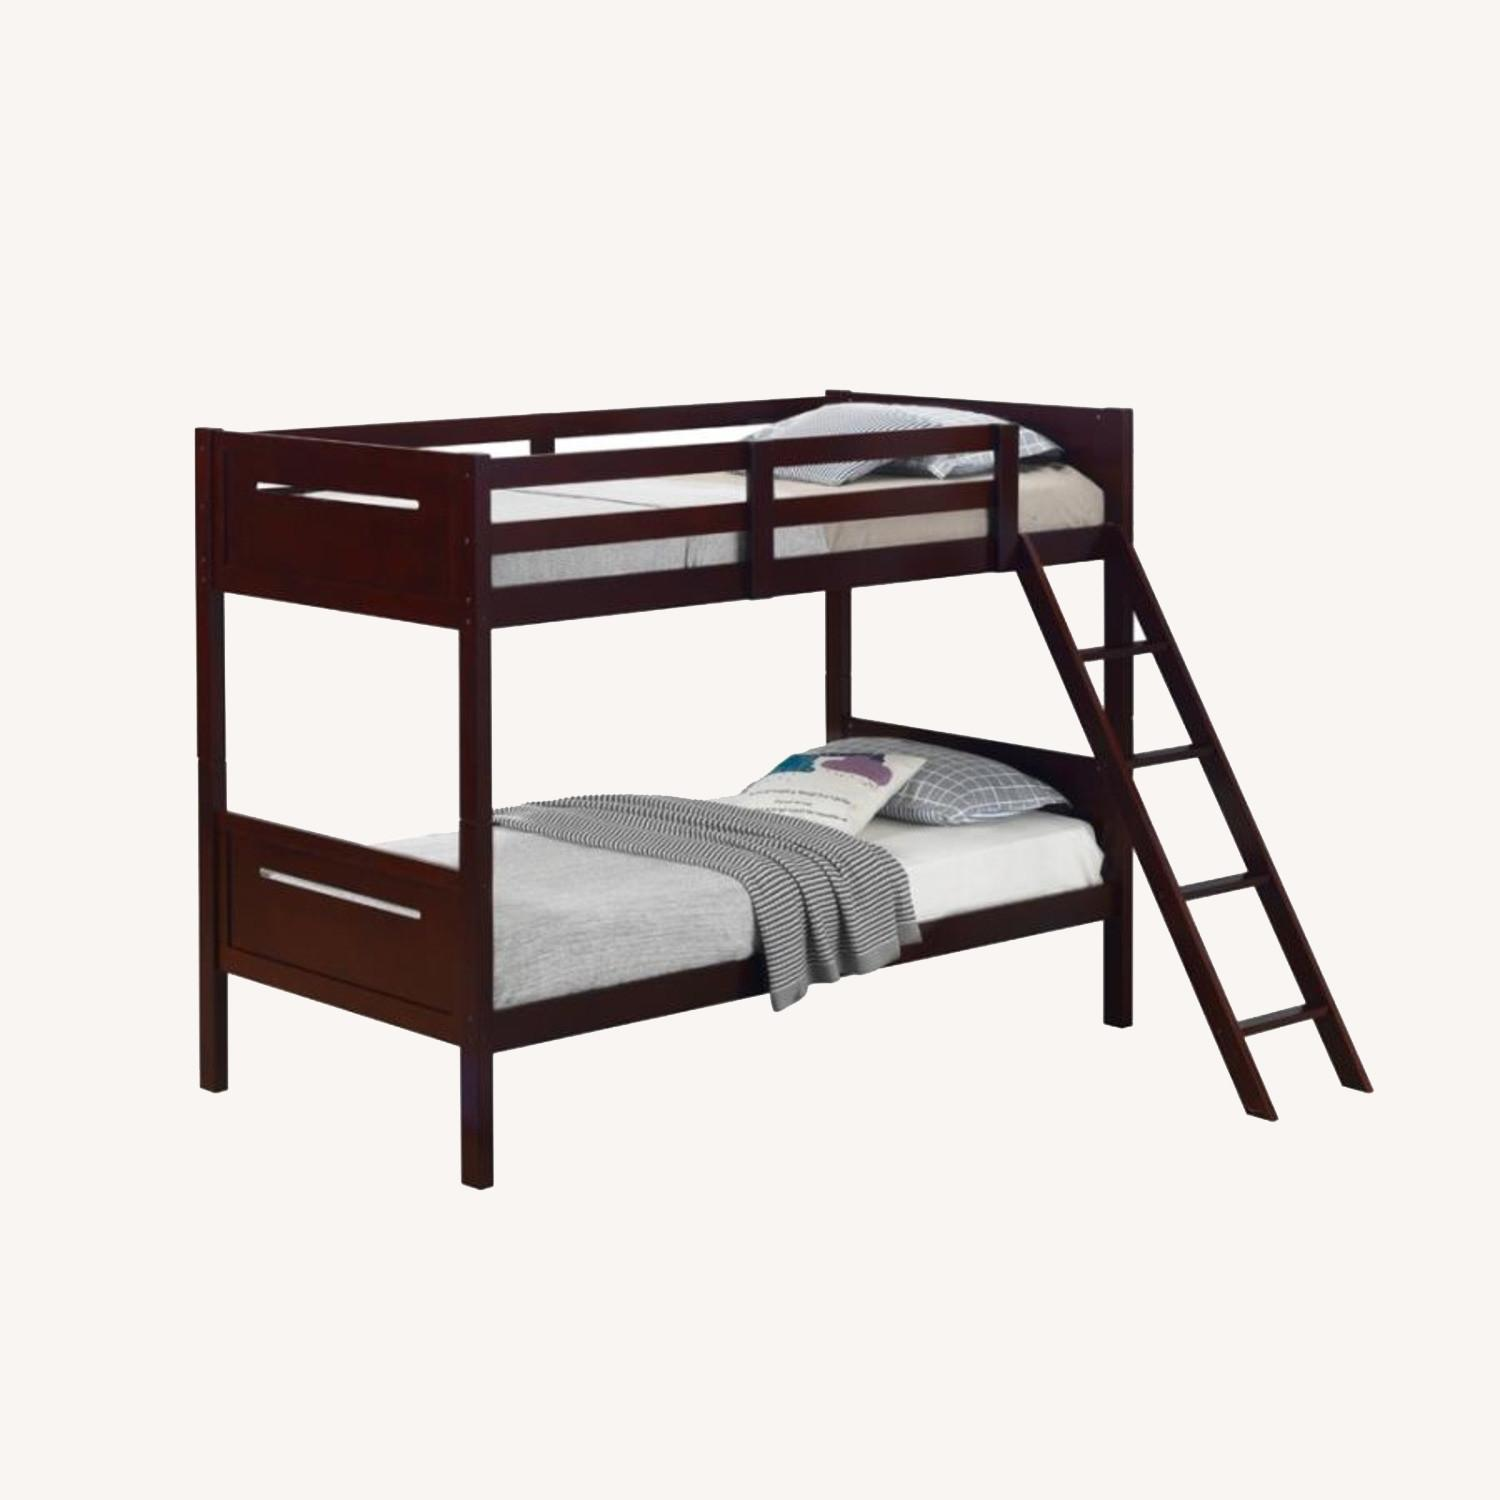 Bunk Bed In Espresso Solid Rubberwood Finish - image-5